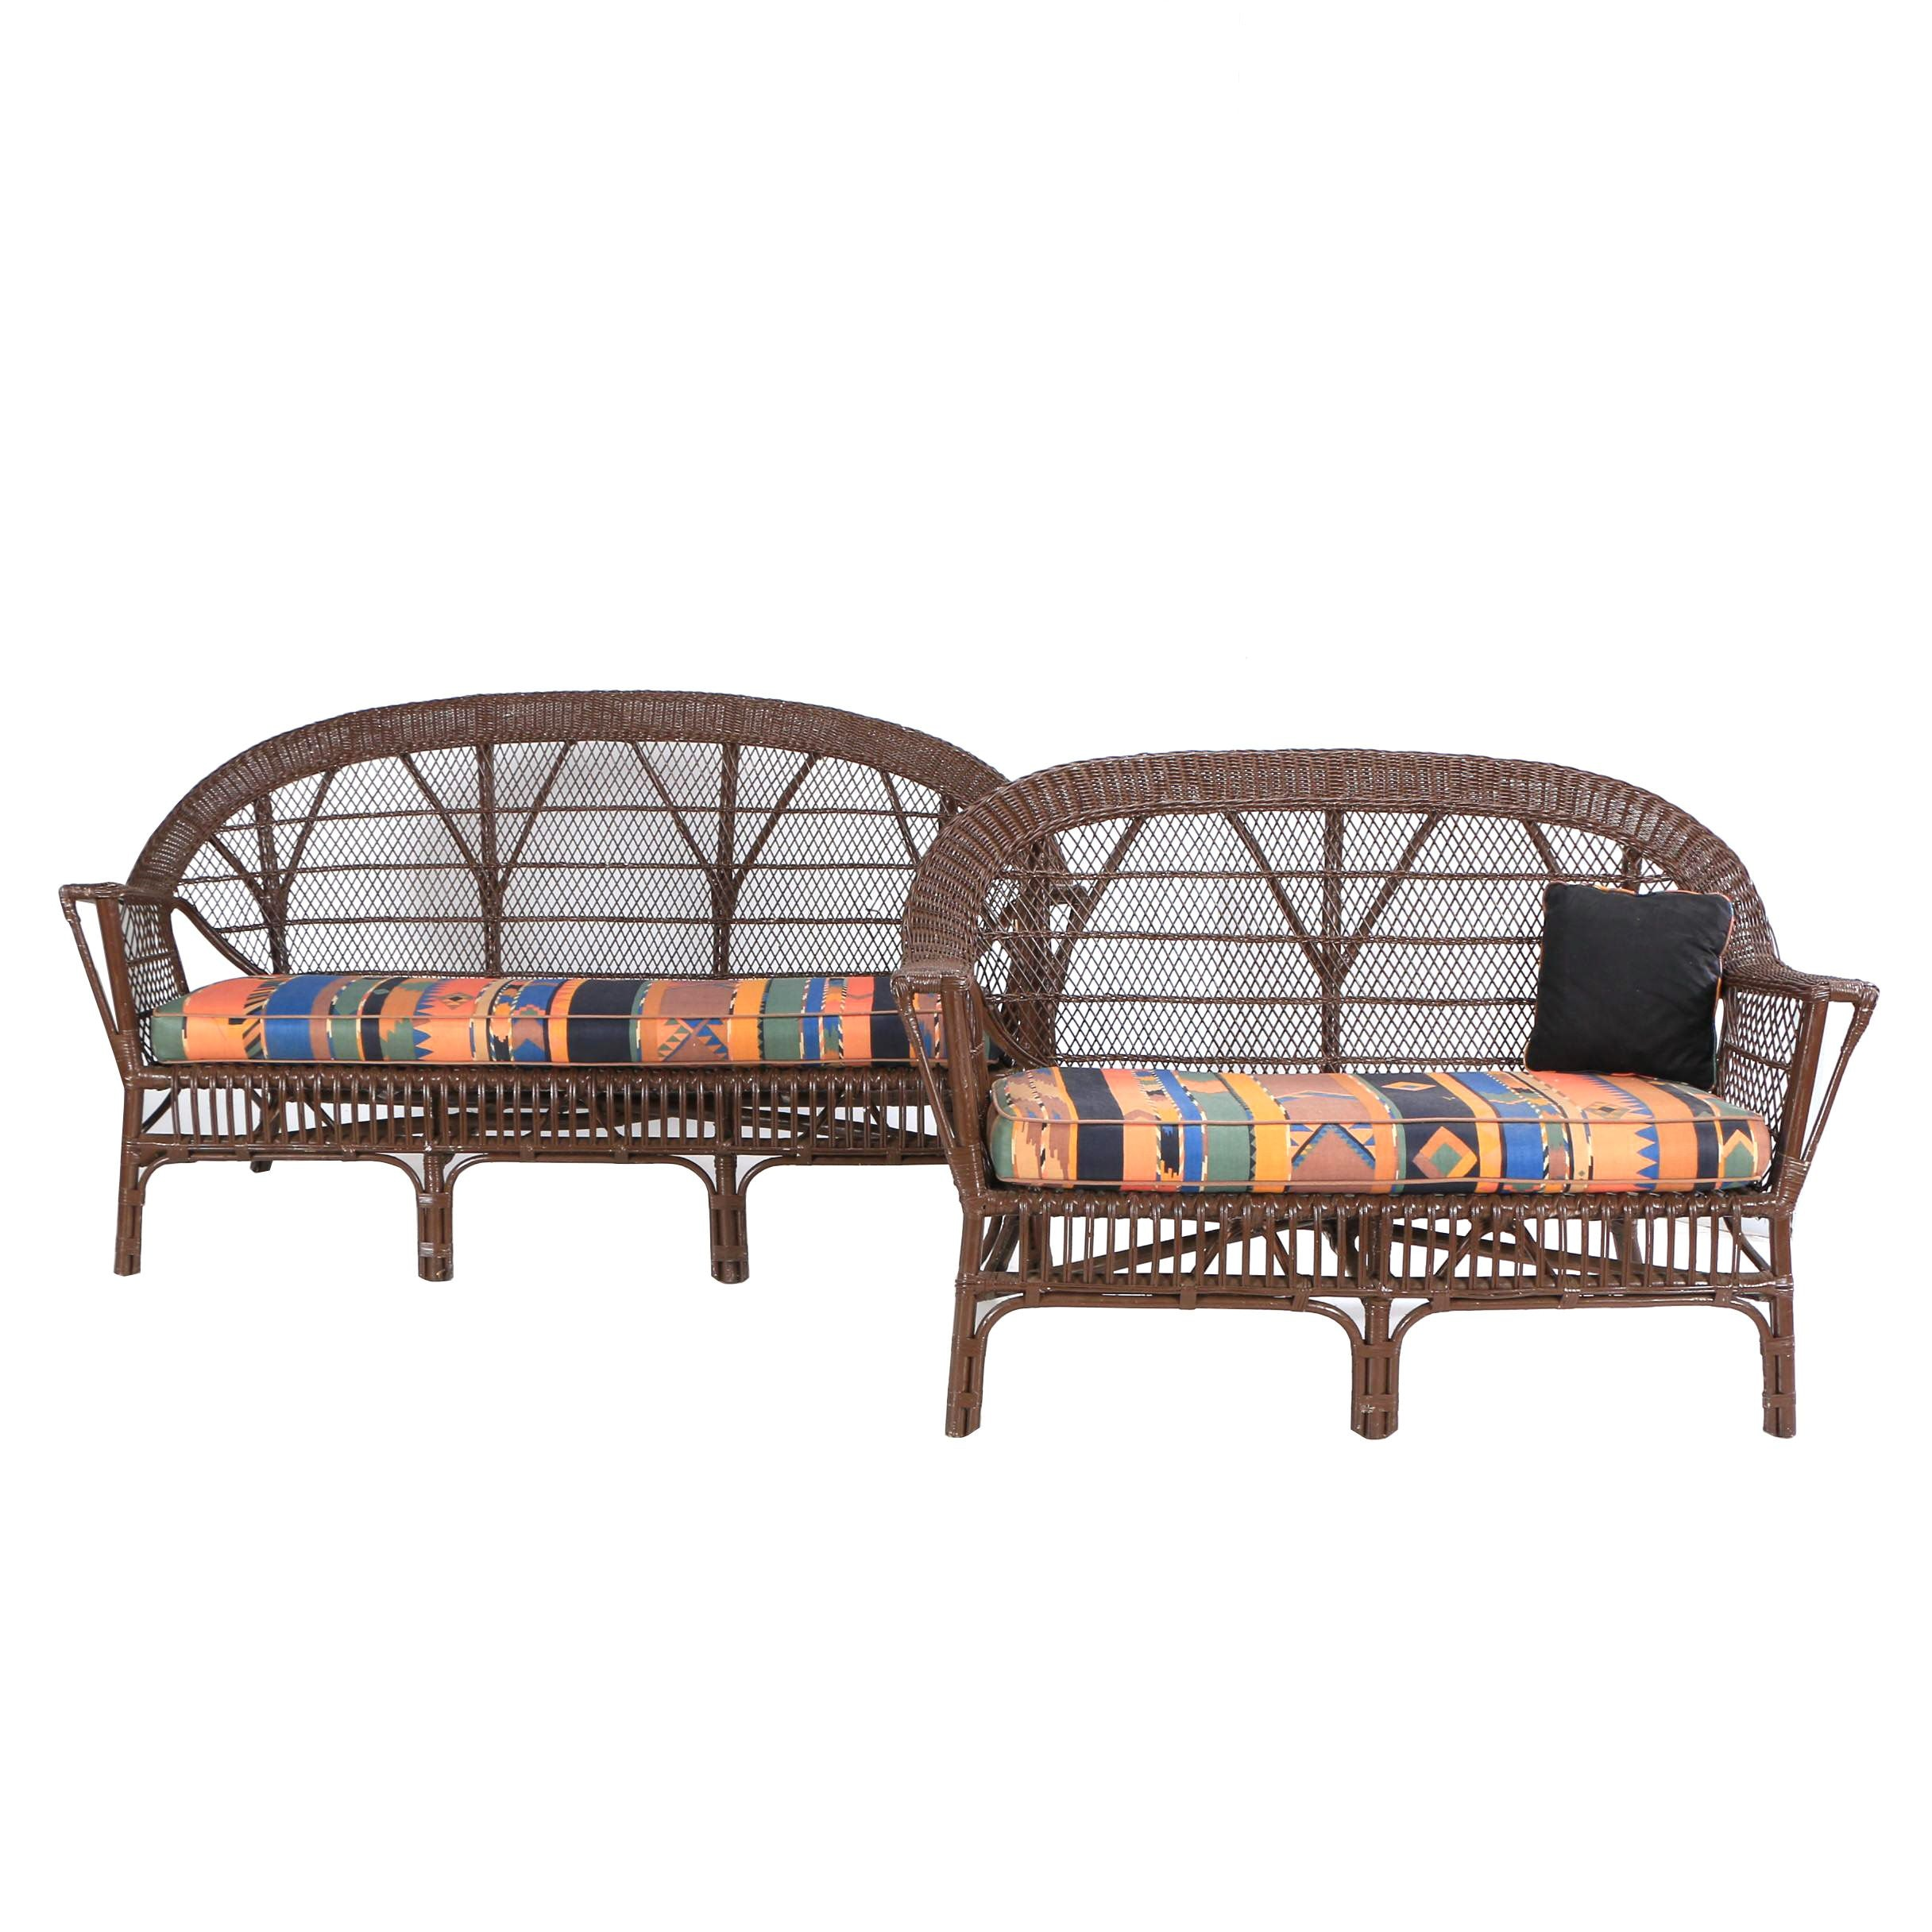 Painted Wicker Patio Sofa and Loveseat, 20th Century